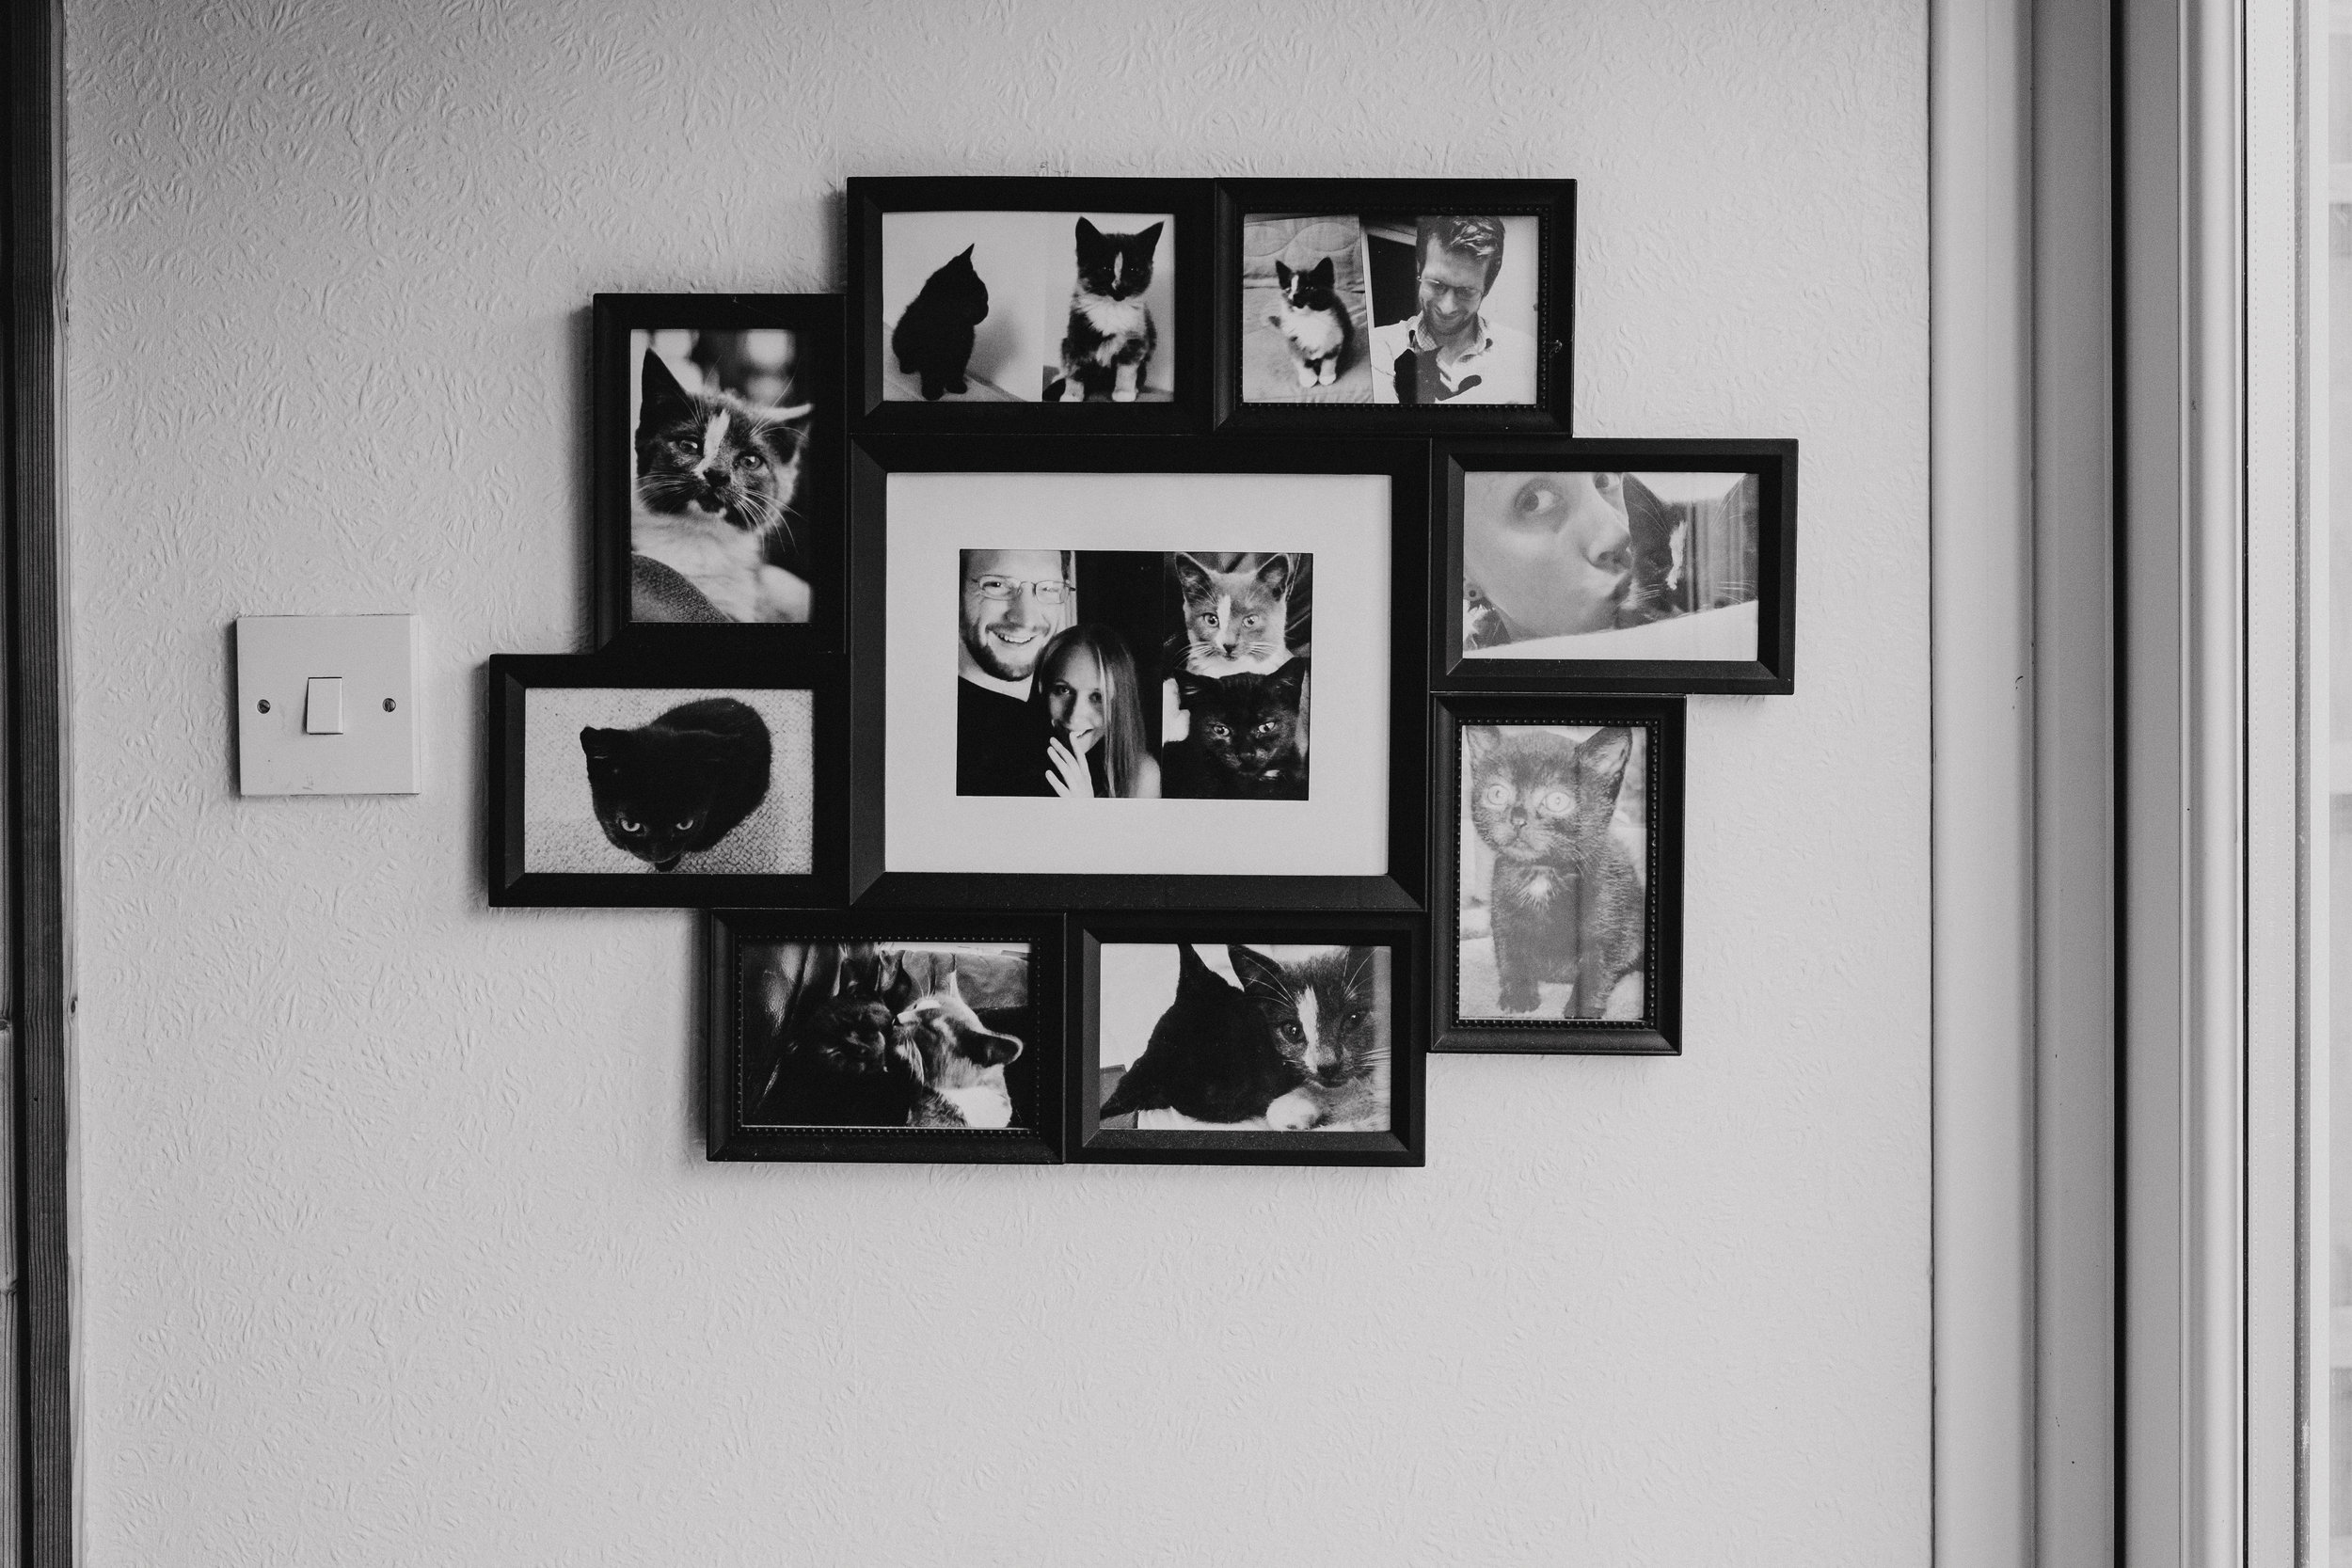 Bride and groom and their cats - photo frame on the wall